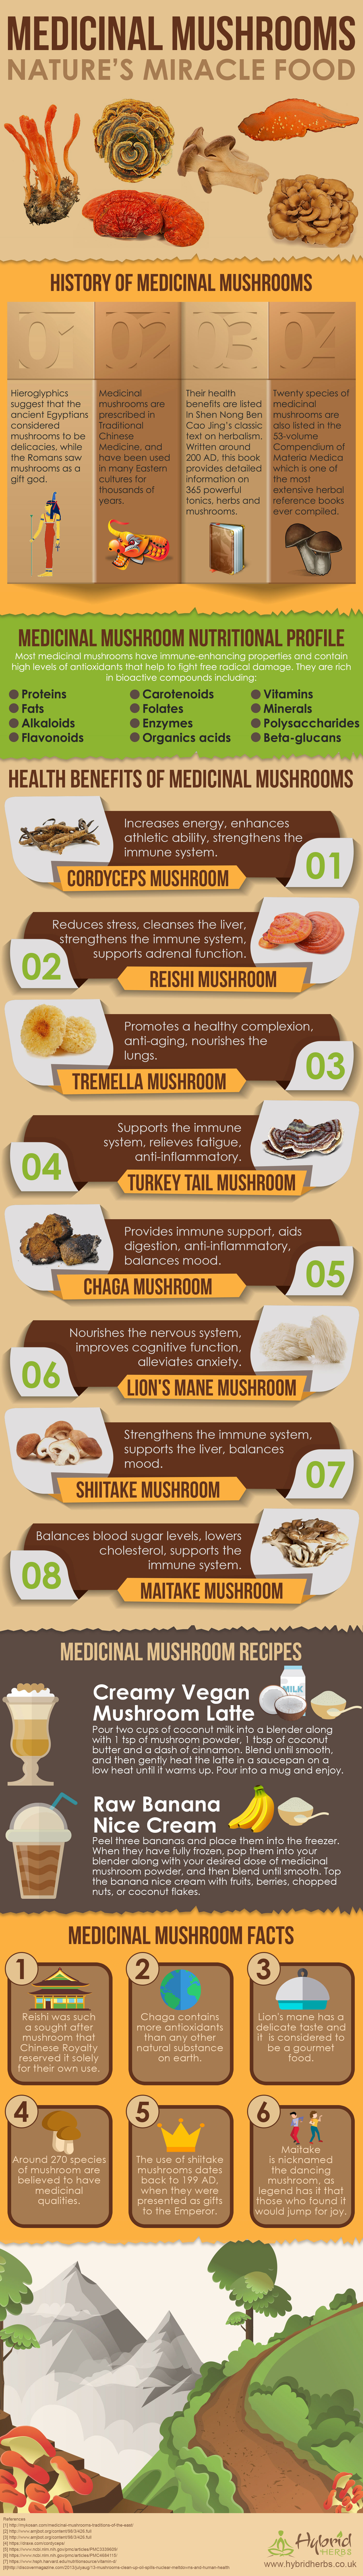 How Mushrooms Can Heal You Naturally